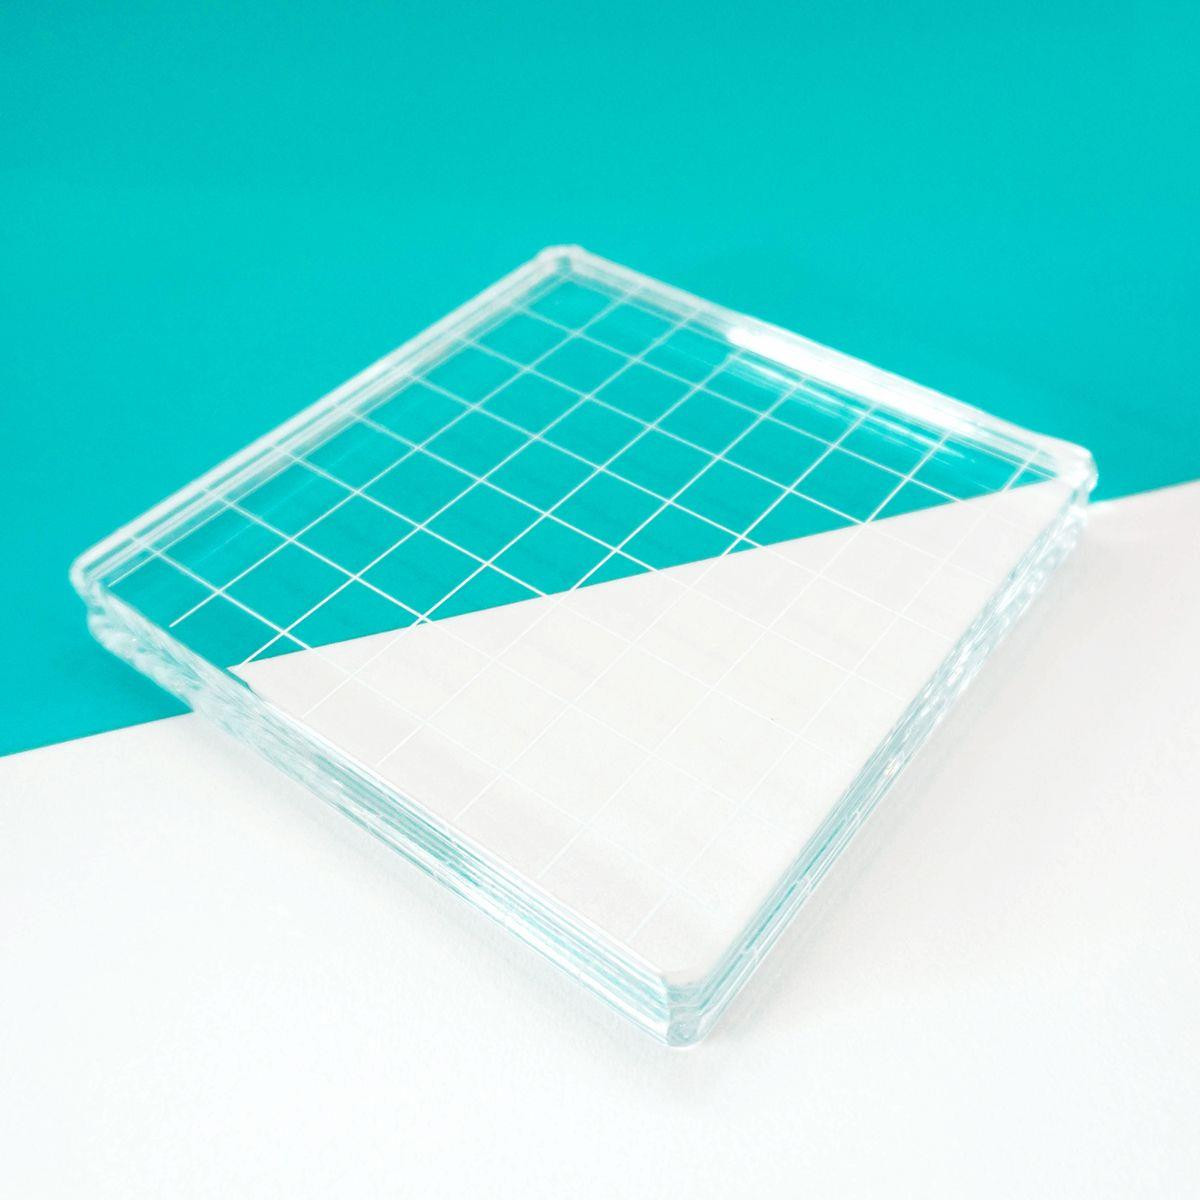 "Clear Acrylic Block 4.25"" X 4.25"" Square, Catherine Pooler -    819447027477"